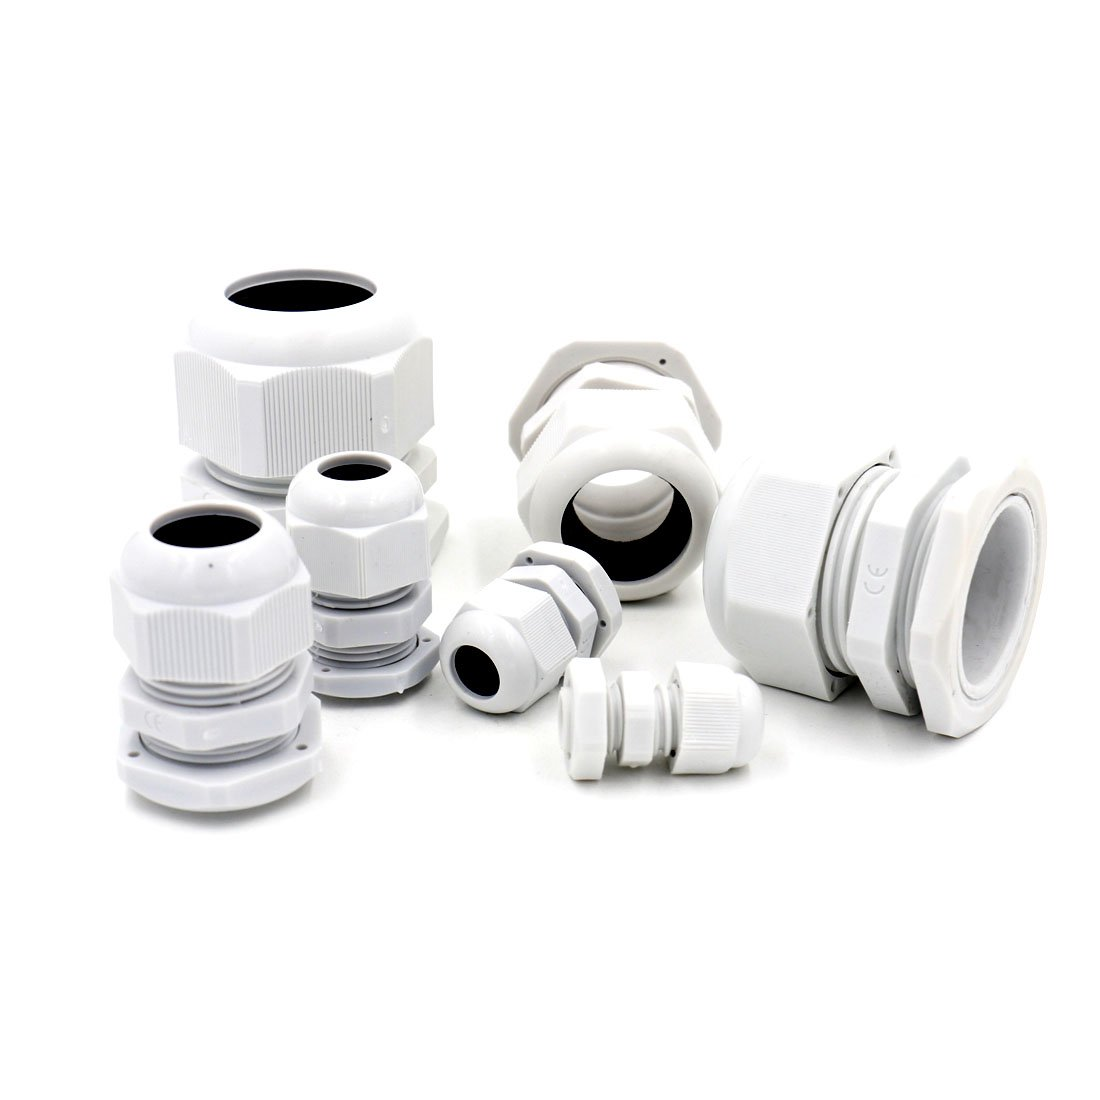 Baomain Plastic Waterproof Adjustable 3.5 - 13mm White Cable Gland Joints, PG7, PG9, PG11, PG13.5, PG16, Pack of 20